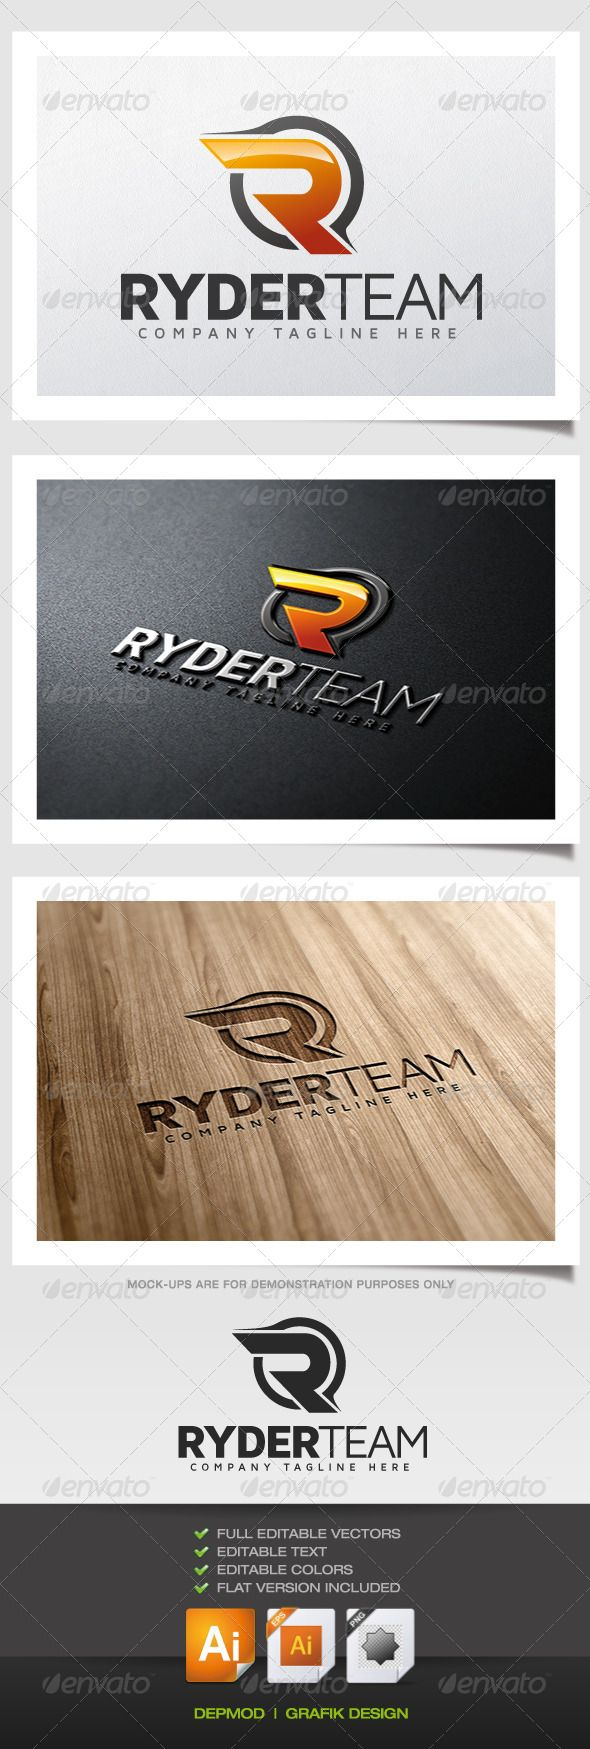 Ryder Team - Logo Design Template Vector #logotype Download it here: http://graphicriver.net/item/ryder-team-logo/5622612?s_rank=971?ref=nexion